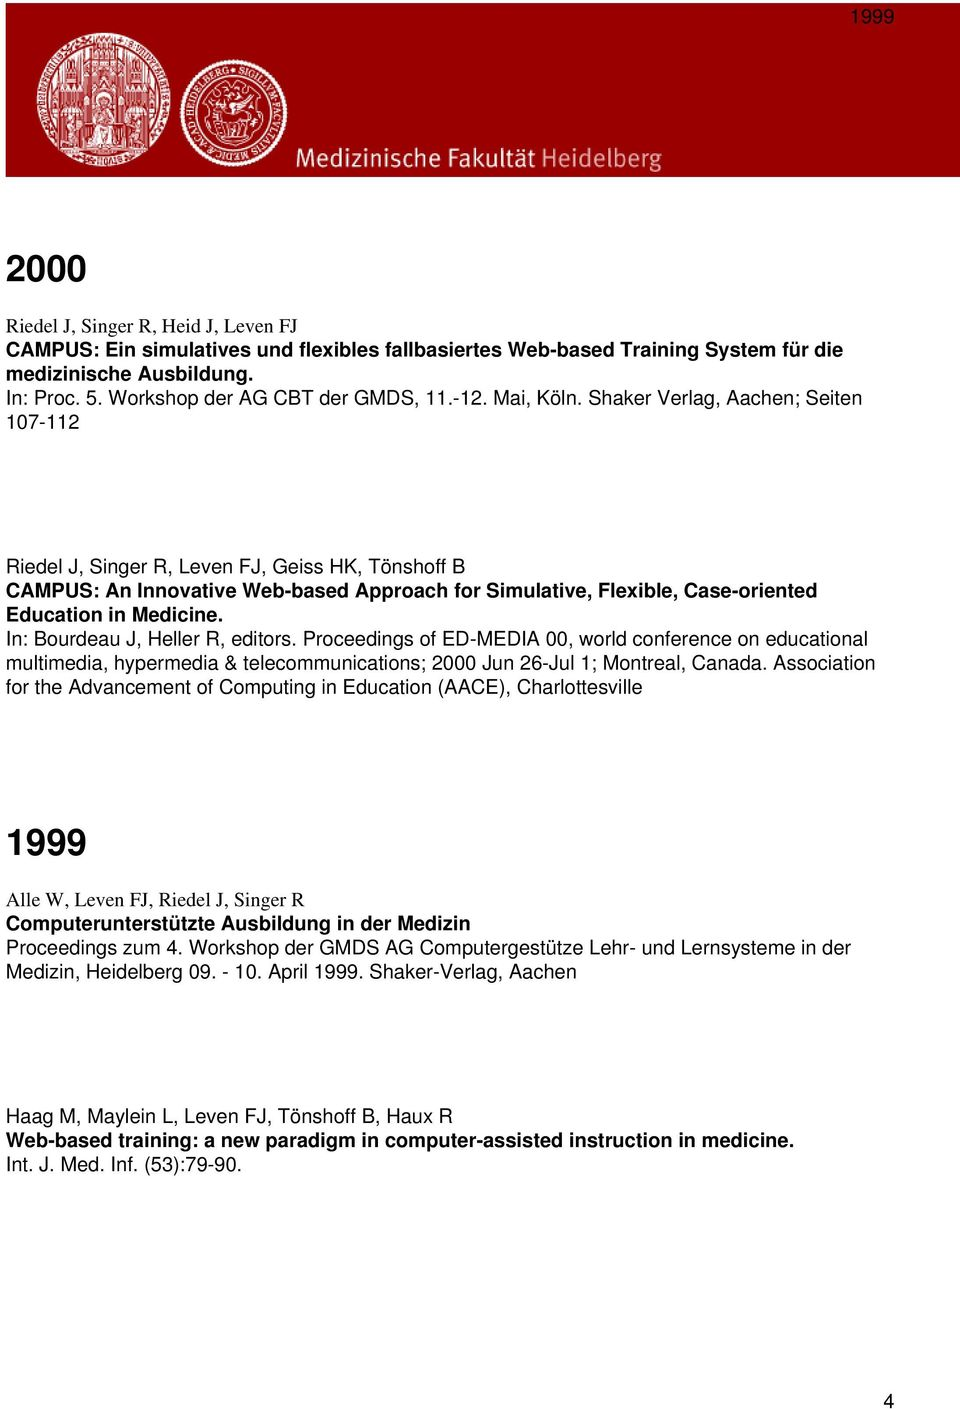 Shaker Verlag, Aachen; Seiten 107-112 Riedel J, Singer R, Leven FJ, Geiss HK, Tönshoff B CAMPUS: An Innovative Web-based Approach for Simulative, Flexible, Case-oriented Education in Medicine.